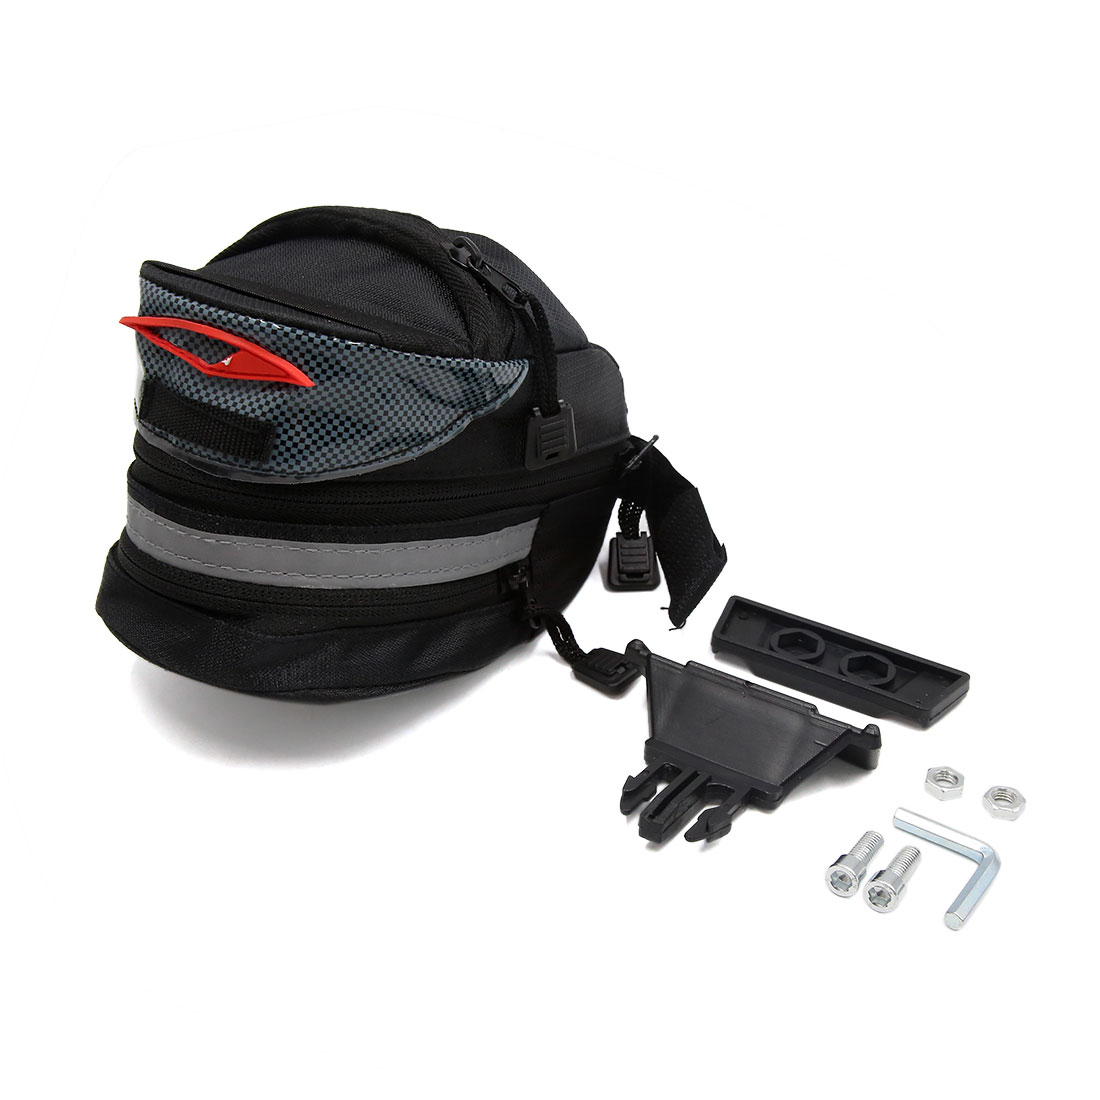 Black 2 Zipped Pockets Tail Saddle Bag Cellphone Pouch Holder for Bicycle Bike